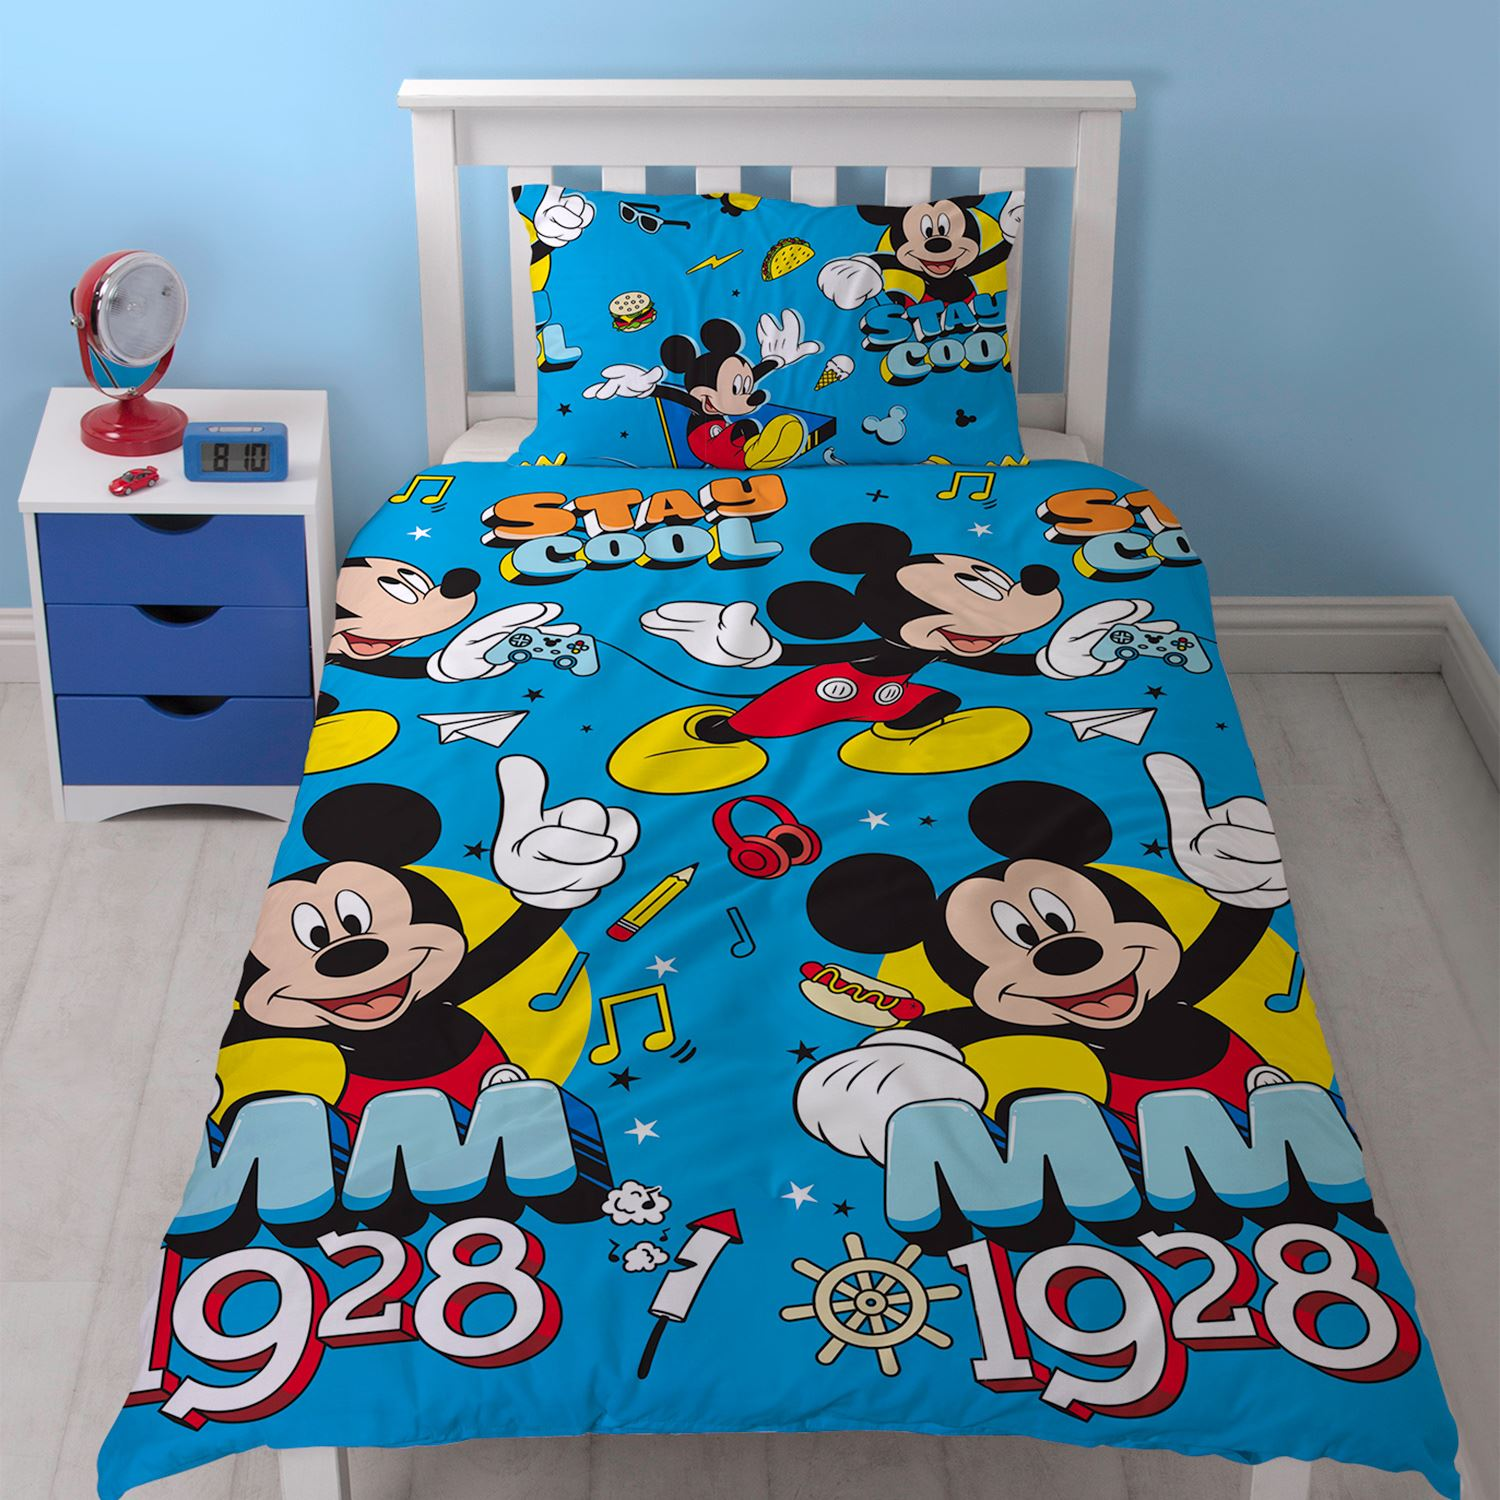 micky maus k hl einzelbettbezug set kinder jungen bettw sche 2 in 1 design ebay. Black Bedroom Furniture Sets. Home Design Ideas